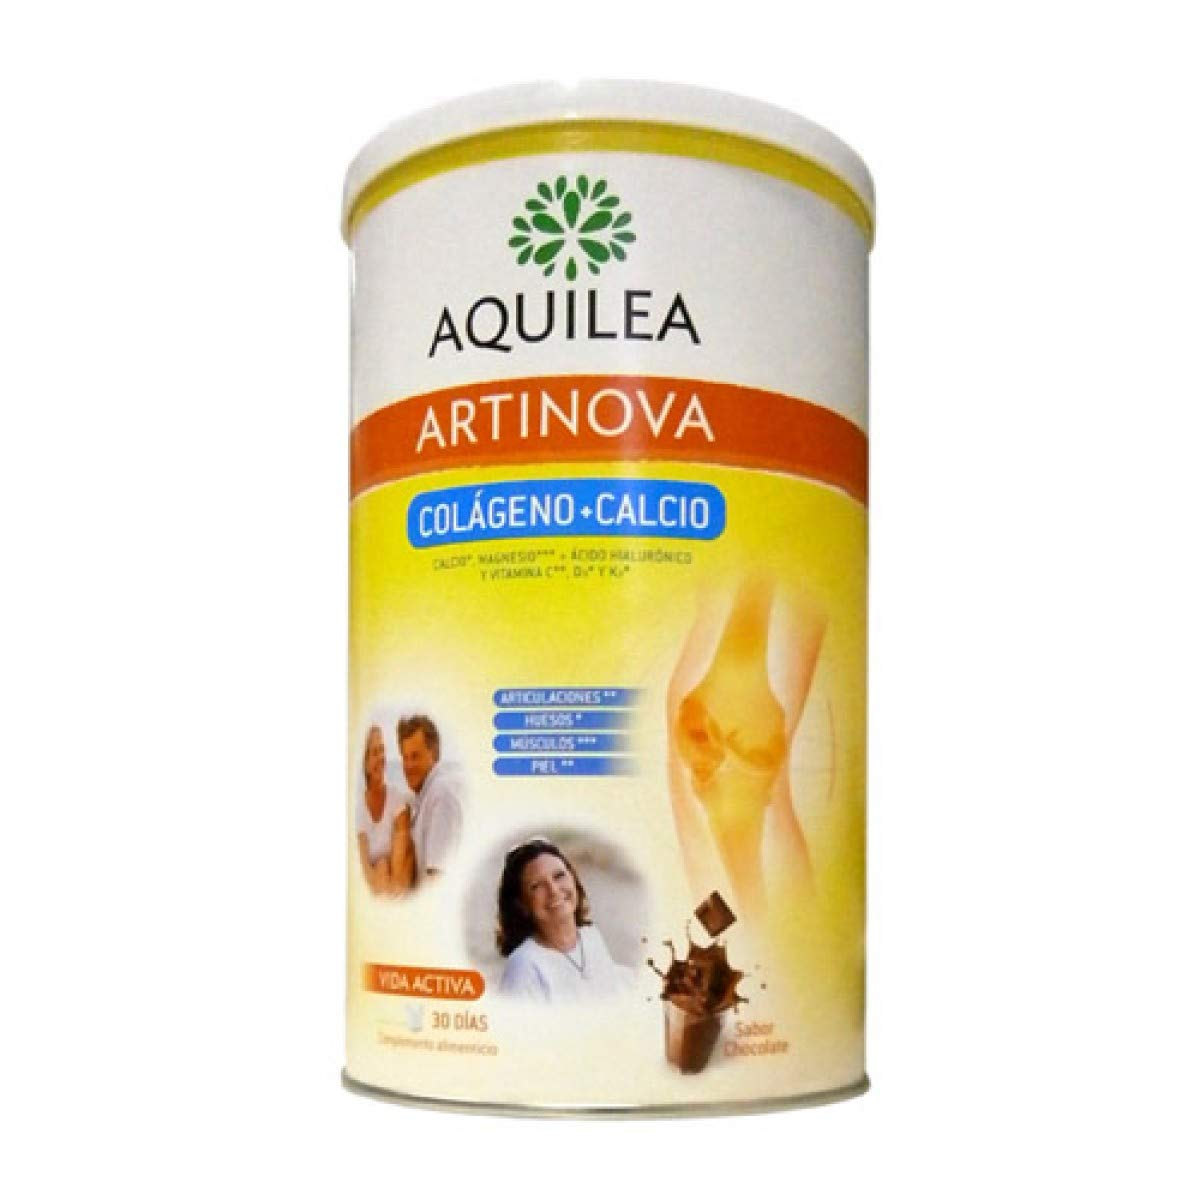 Amazon.com: Aquilea Artinova Collagen + Calcium 495g - Strengthens Bones & Joints - Increases The Level of Collagen & Calcium in Your Body - Provides ...